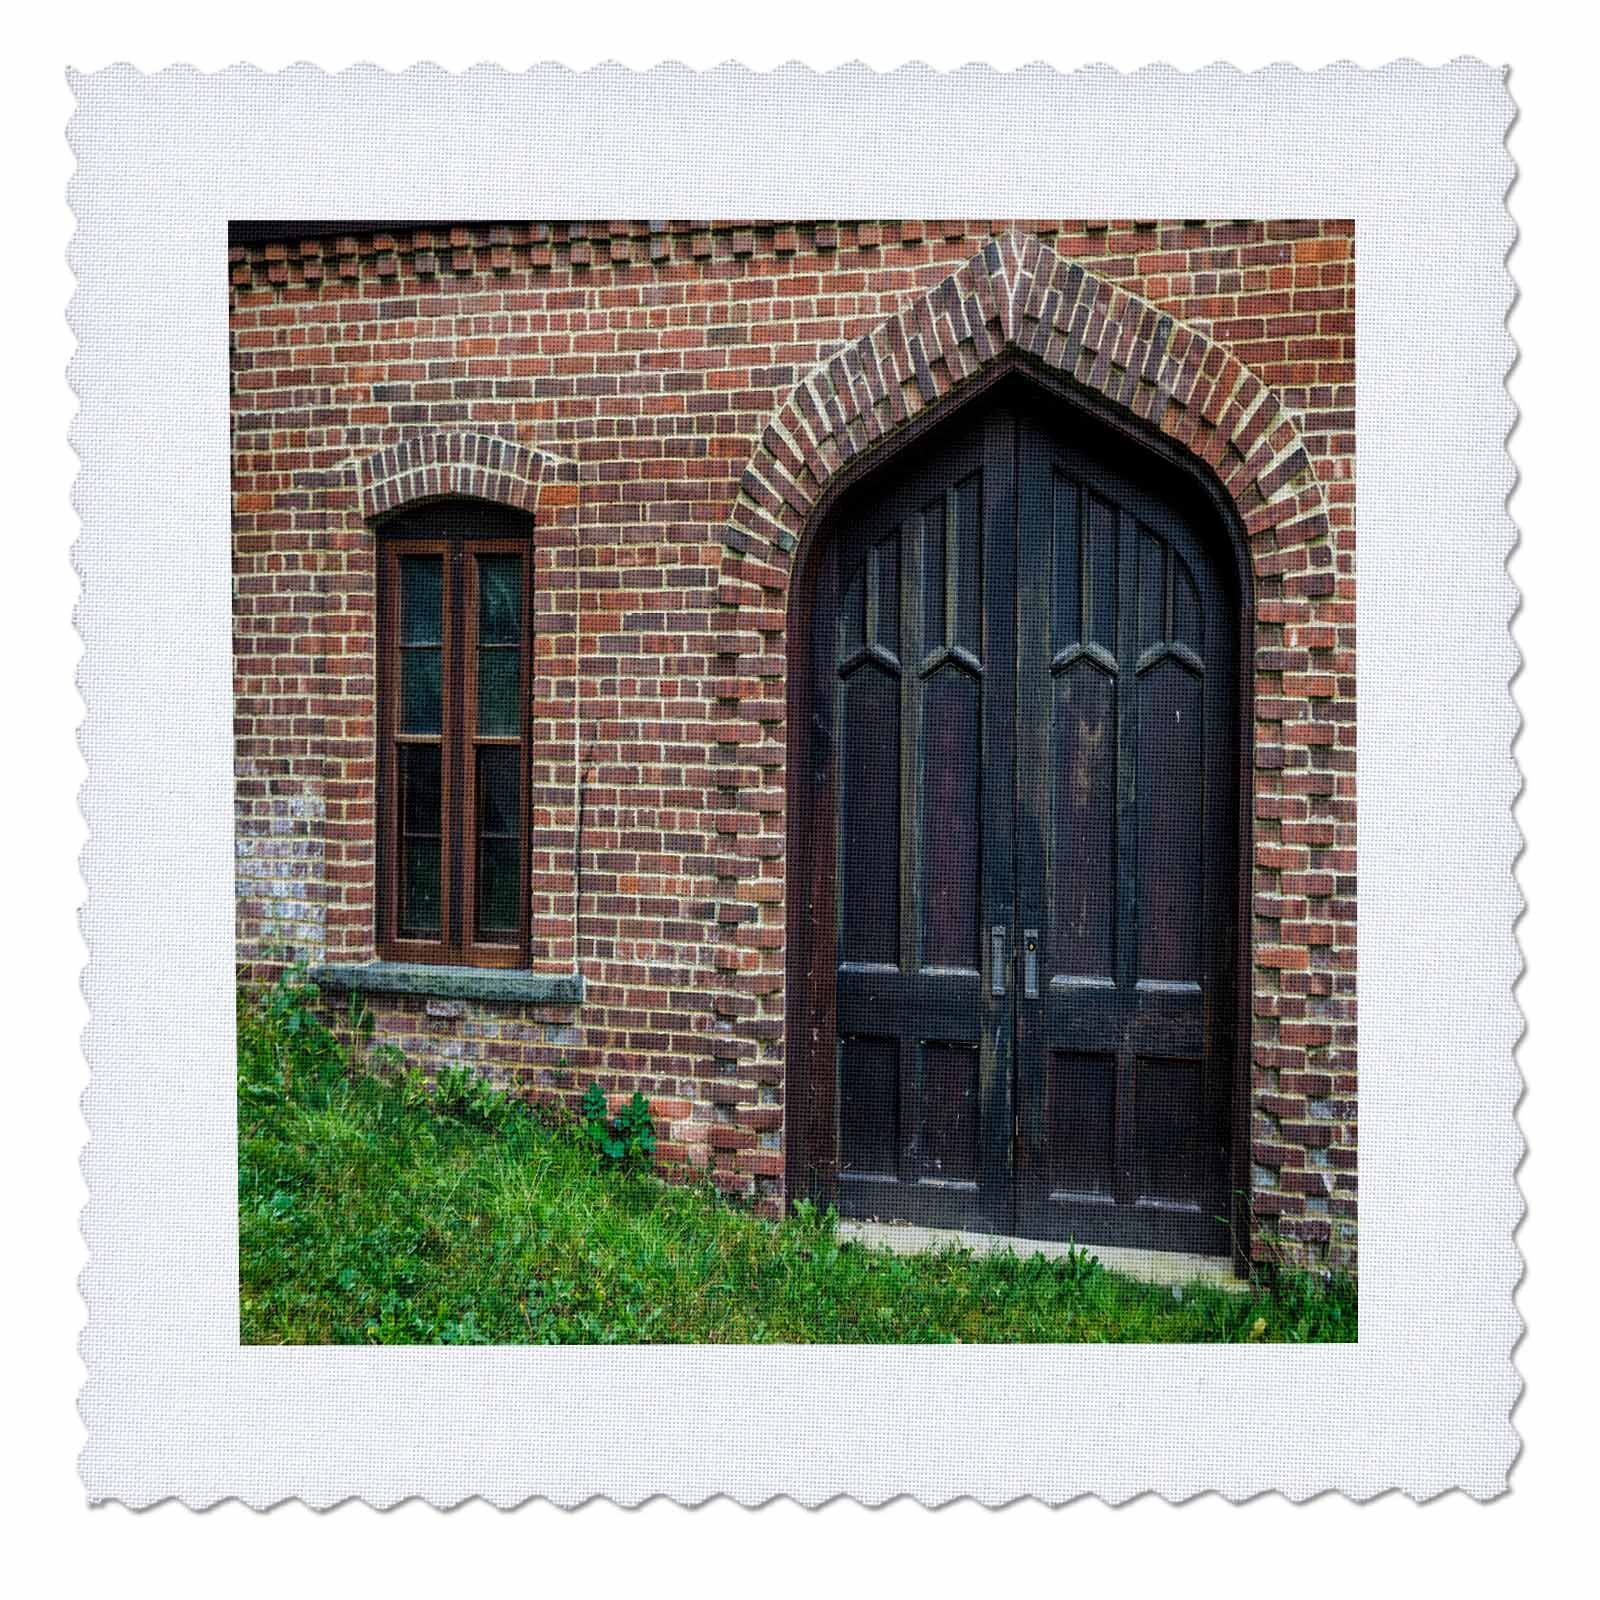 3dRose Roni Chastain Photography - Window and Door - 12x12 inch quilt square (qs_269609_4)